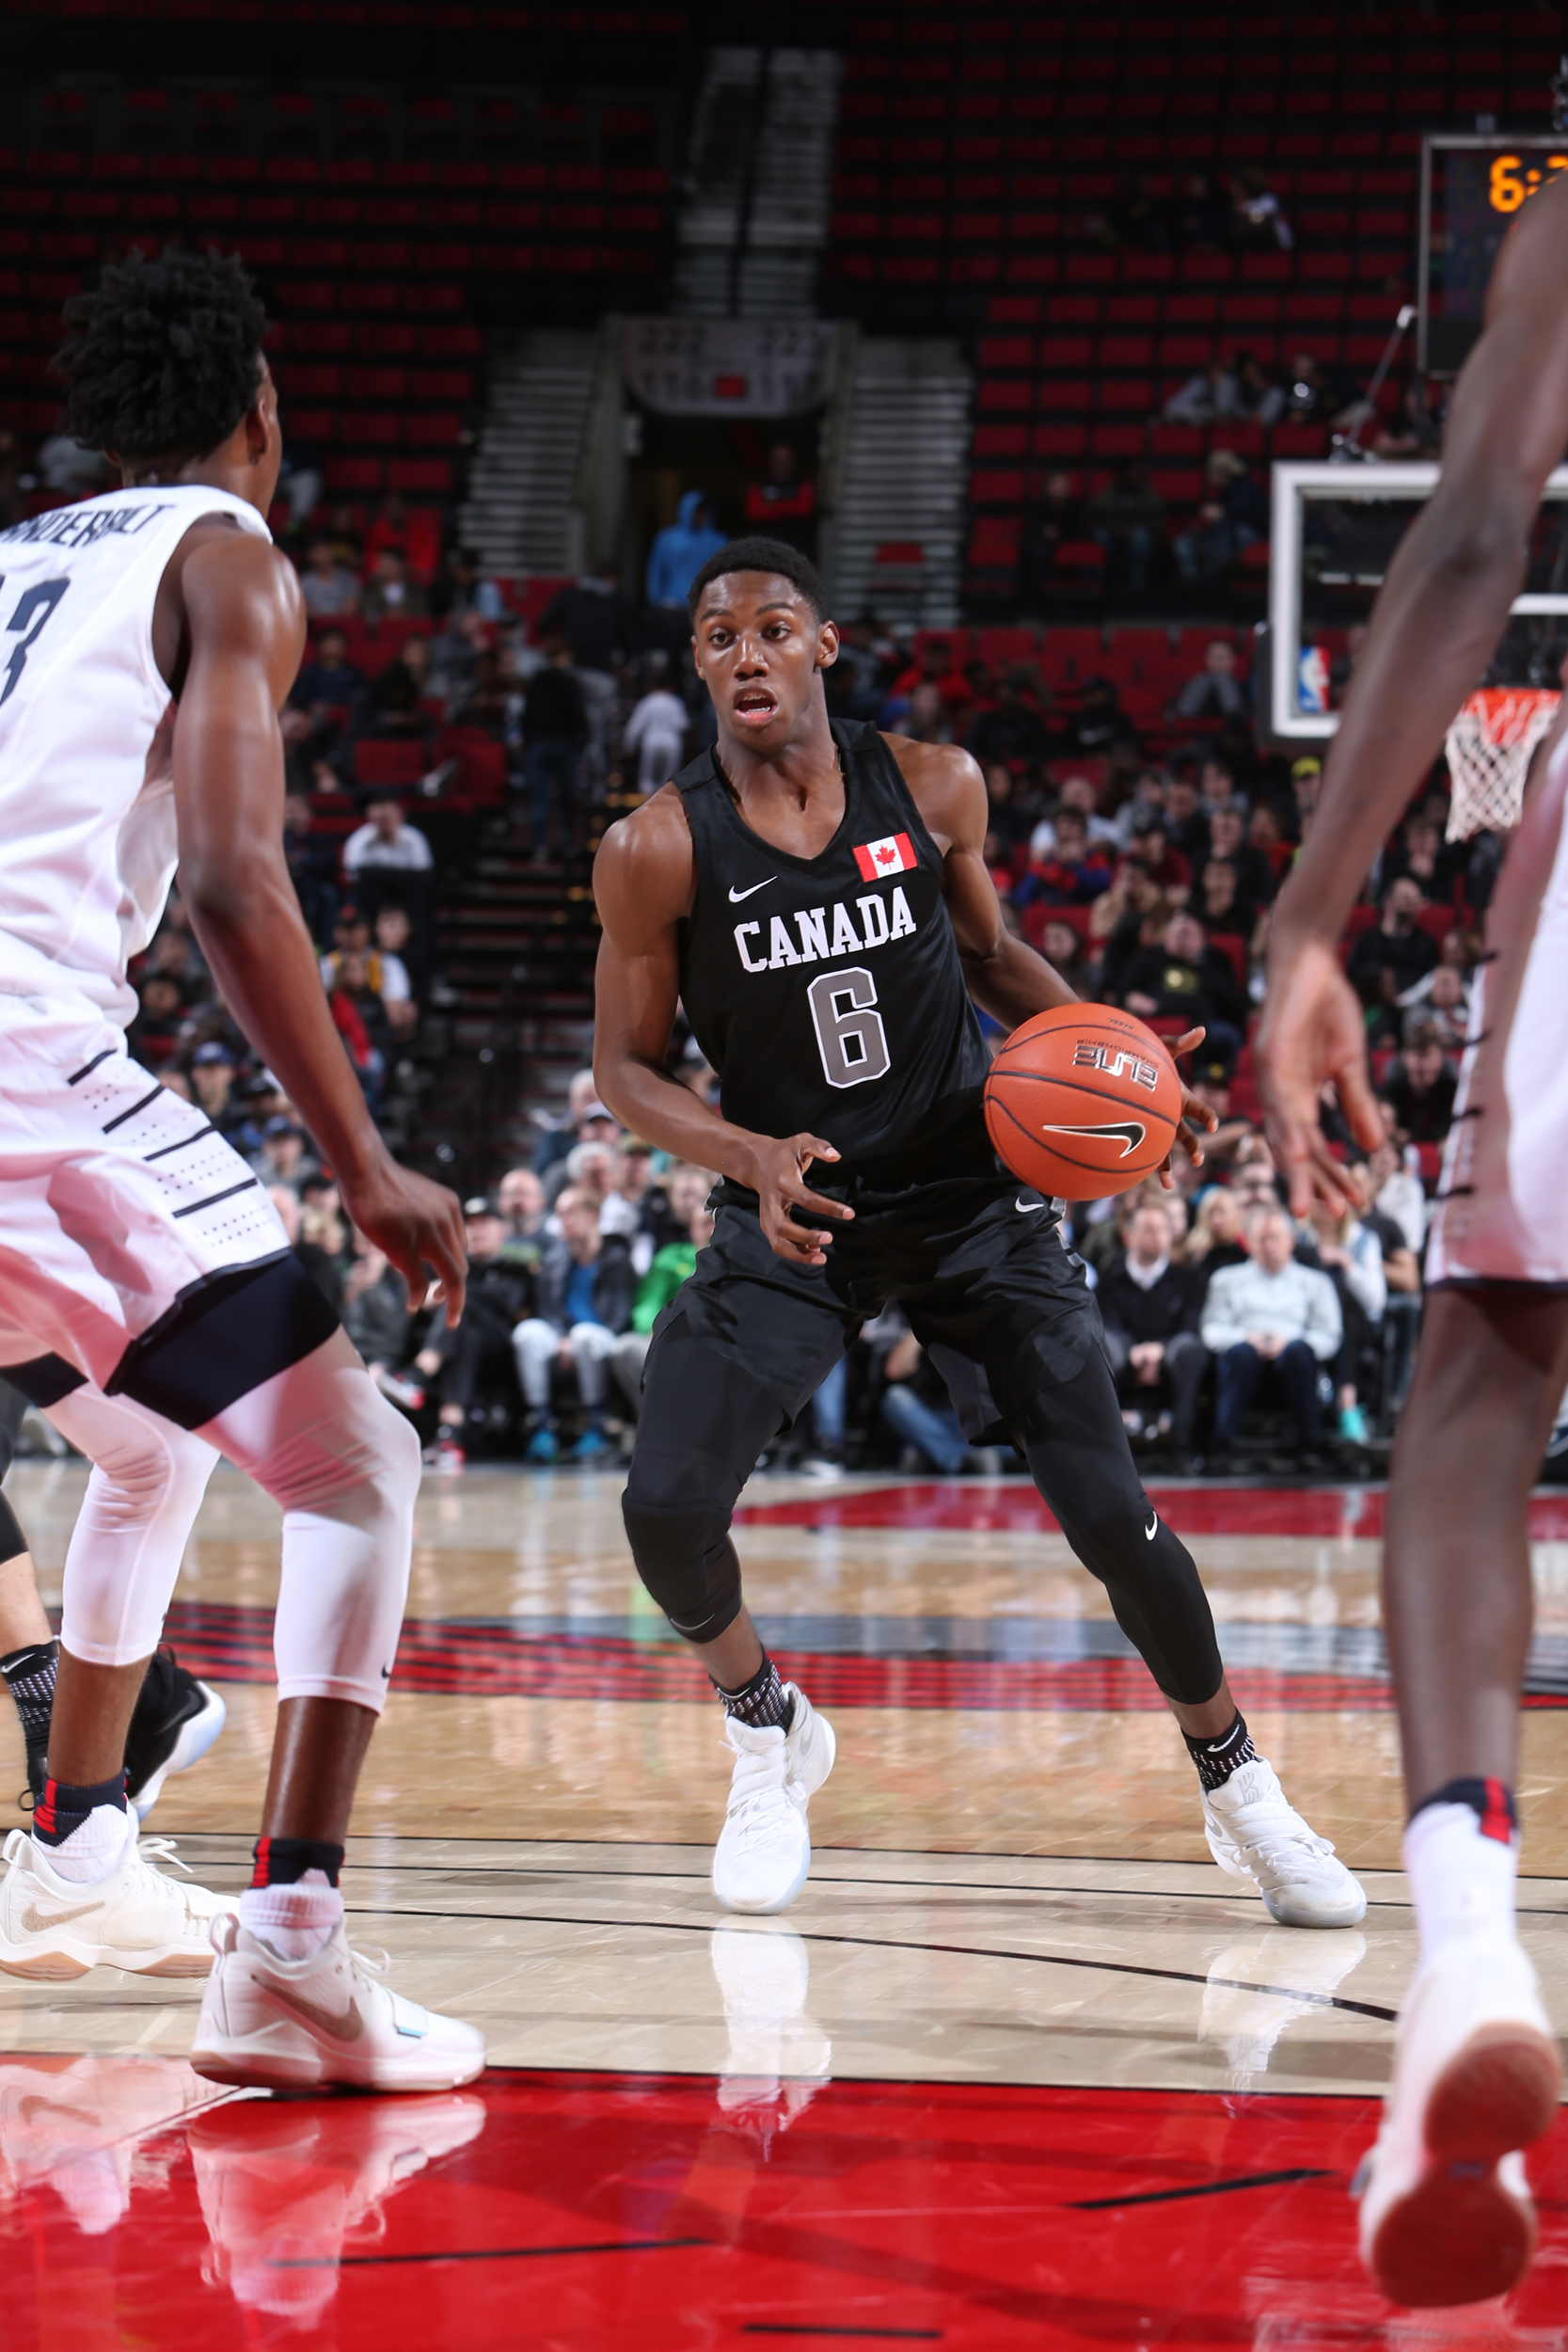 promo code 19d4c cf4af R.J. Barrett  6 of the World Select Team drives against the USA Junior  Select Team during the game on April 7, 2017 at the MODA Center Arena in  Portland, ...